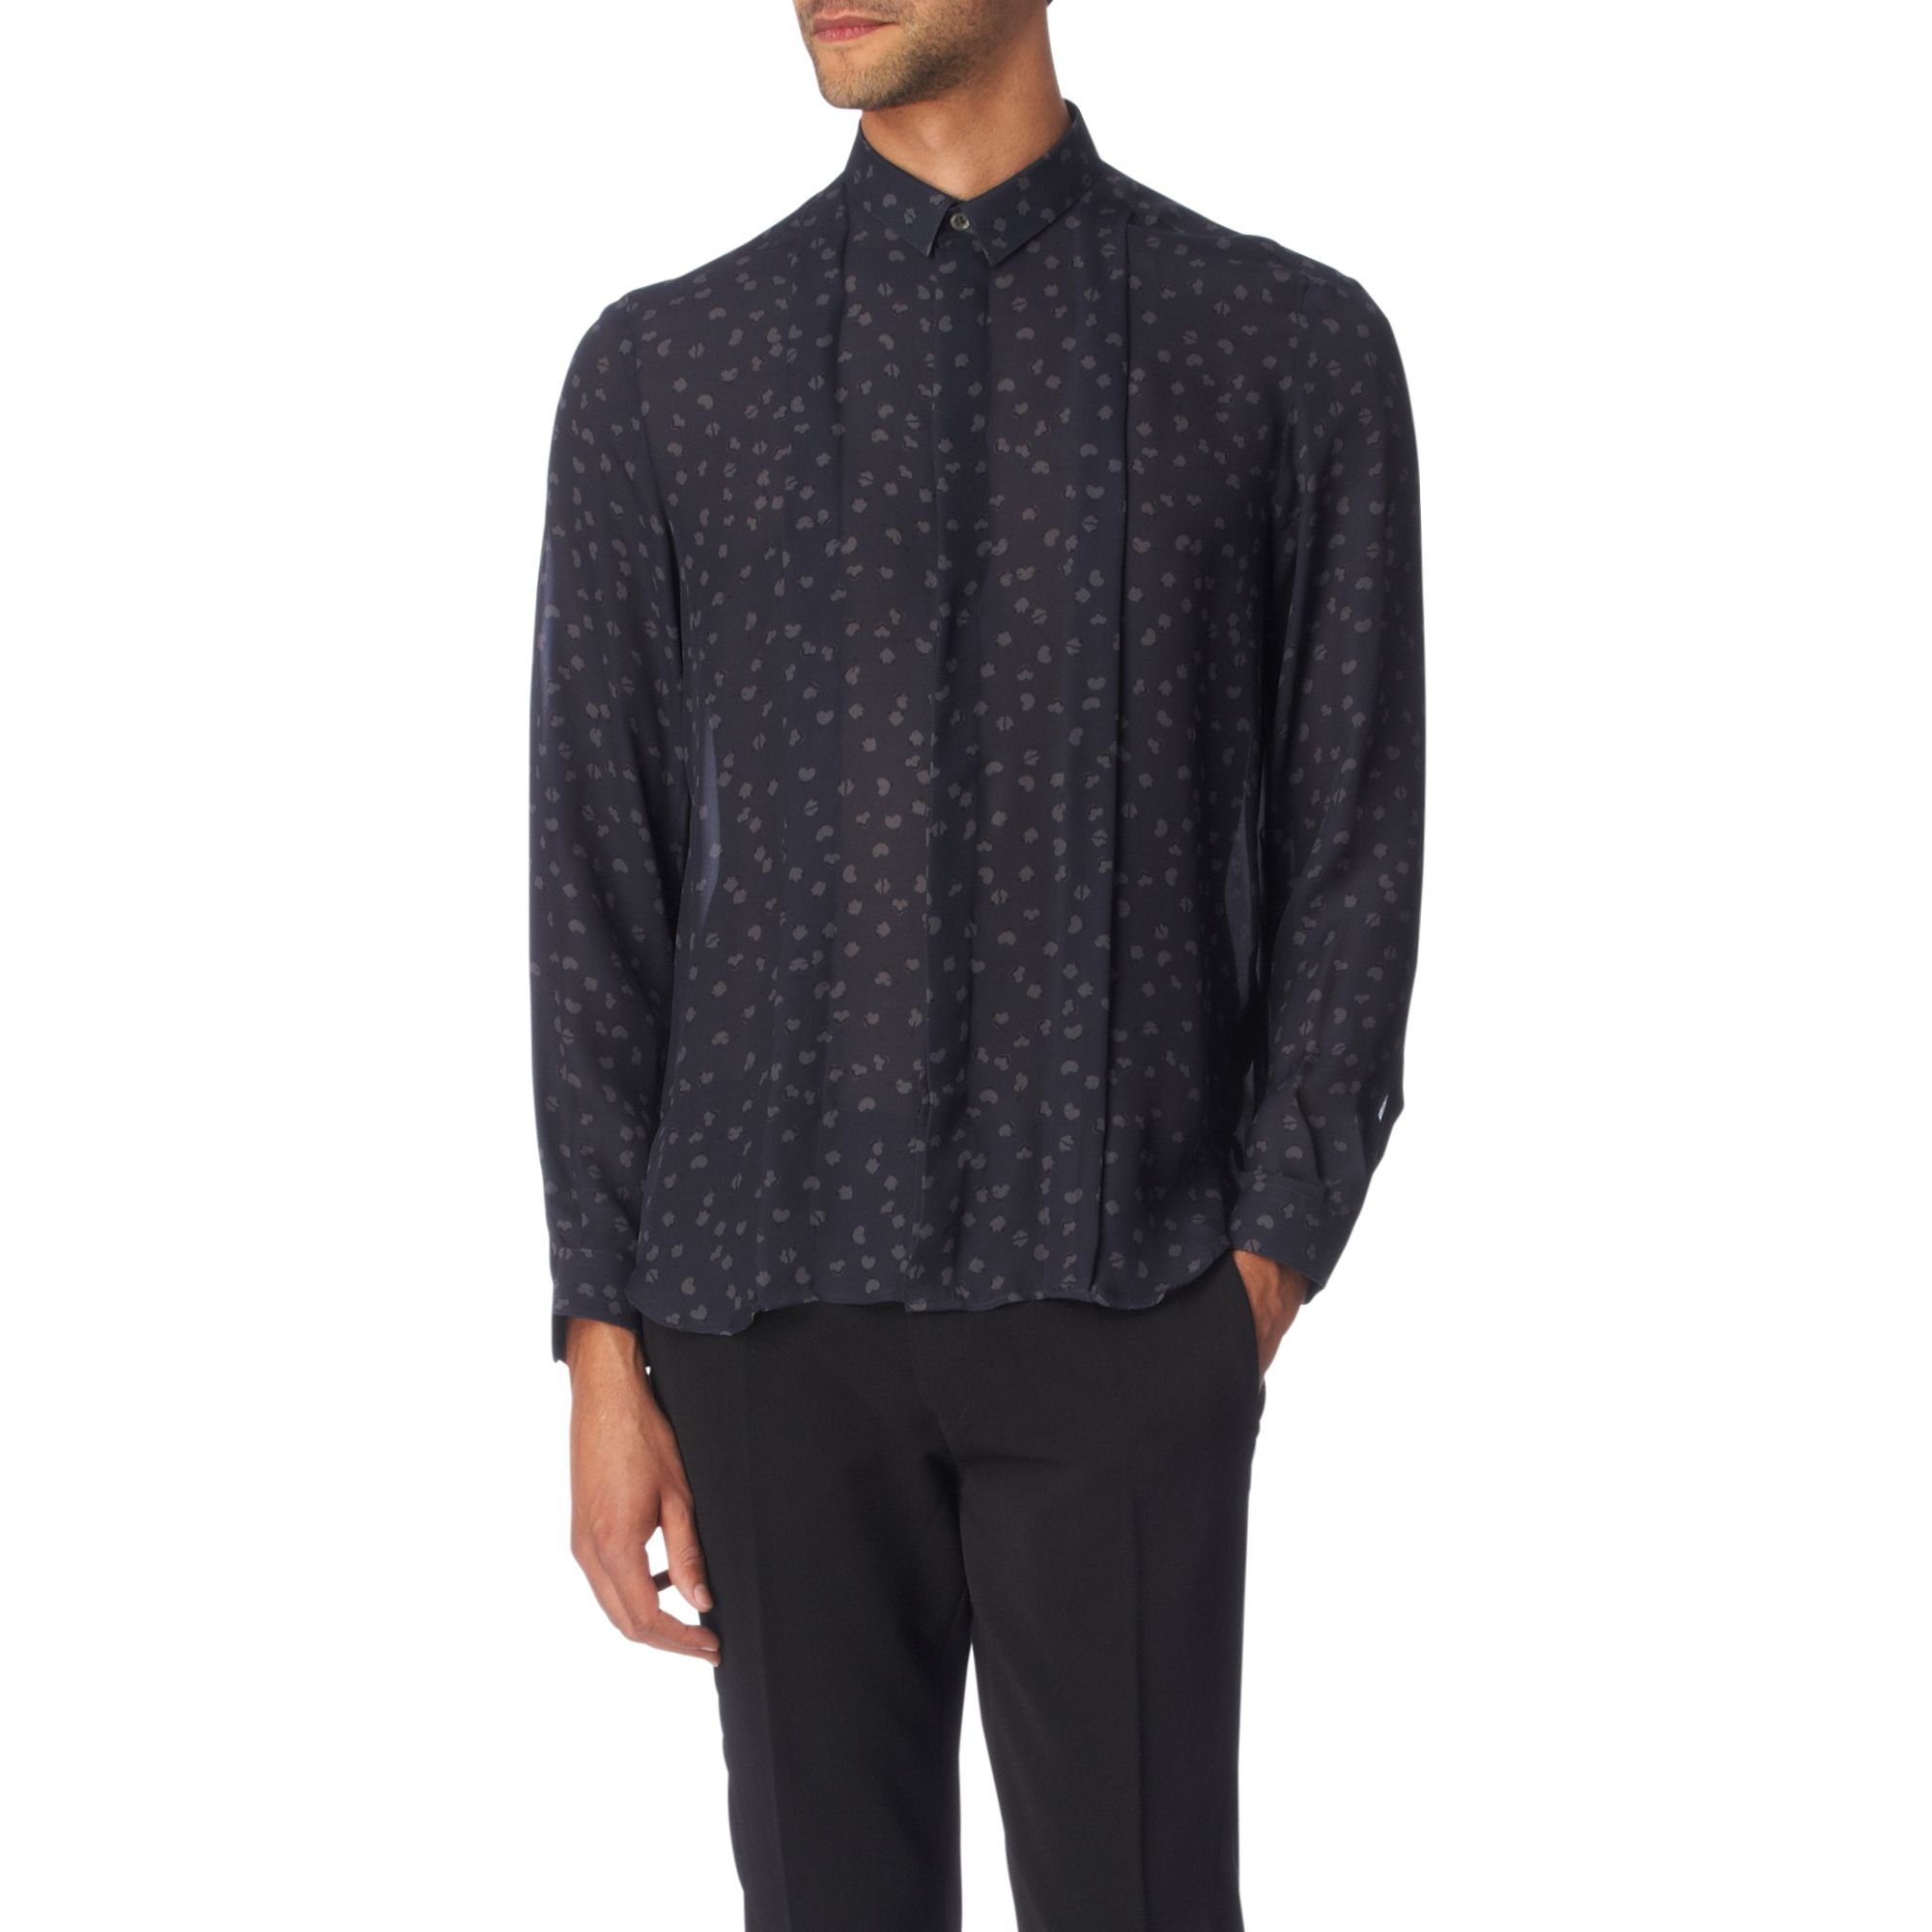 Acne studios sheer relaxed fit single cuff shirt in black for Single cuff dress shirt